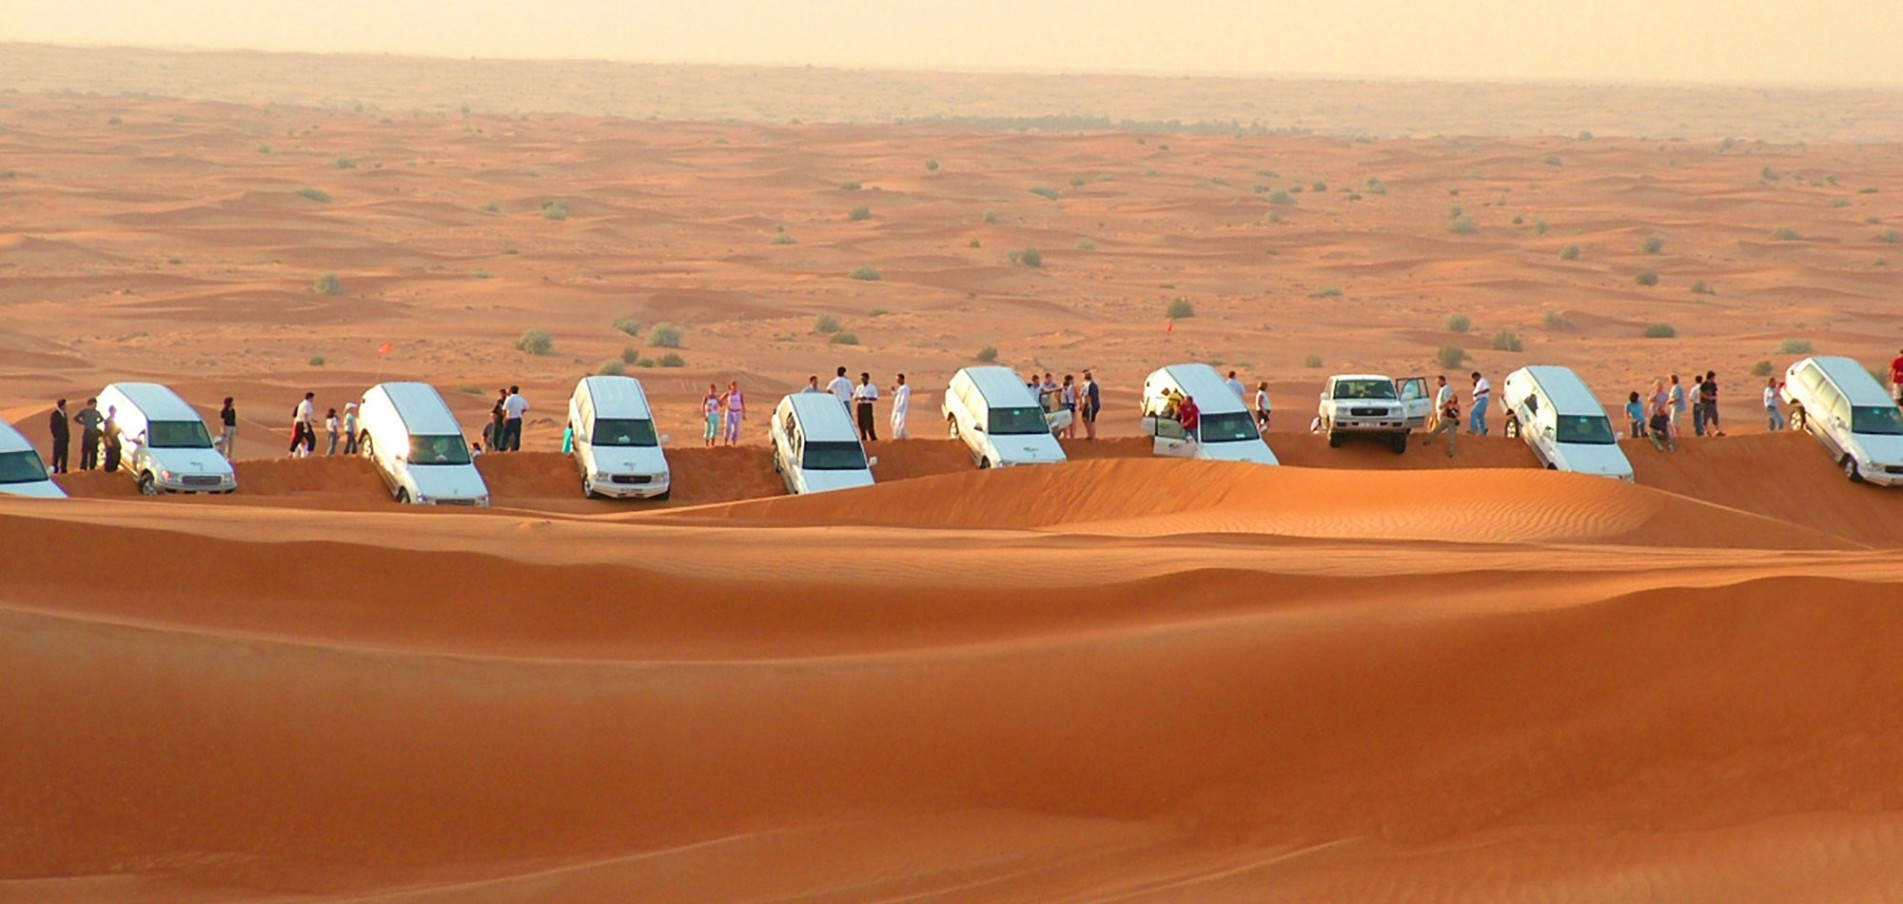 Dune Bashing Action ohne Ende – Desert Safari Dubai.